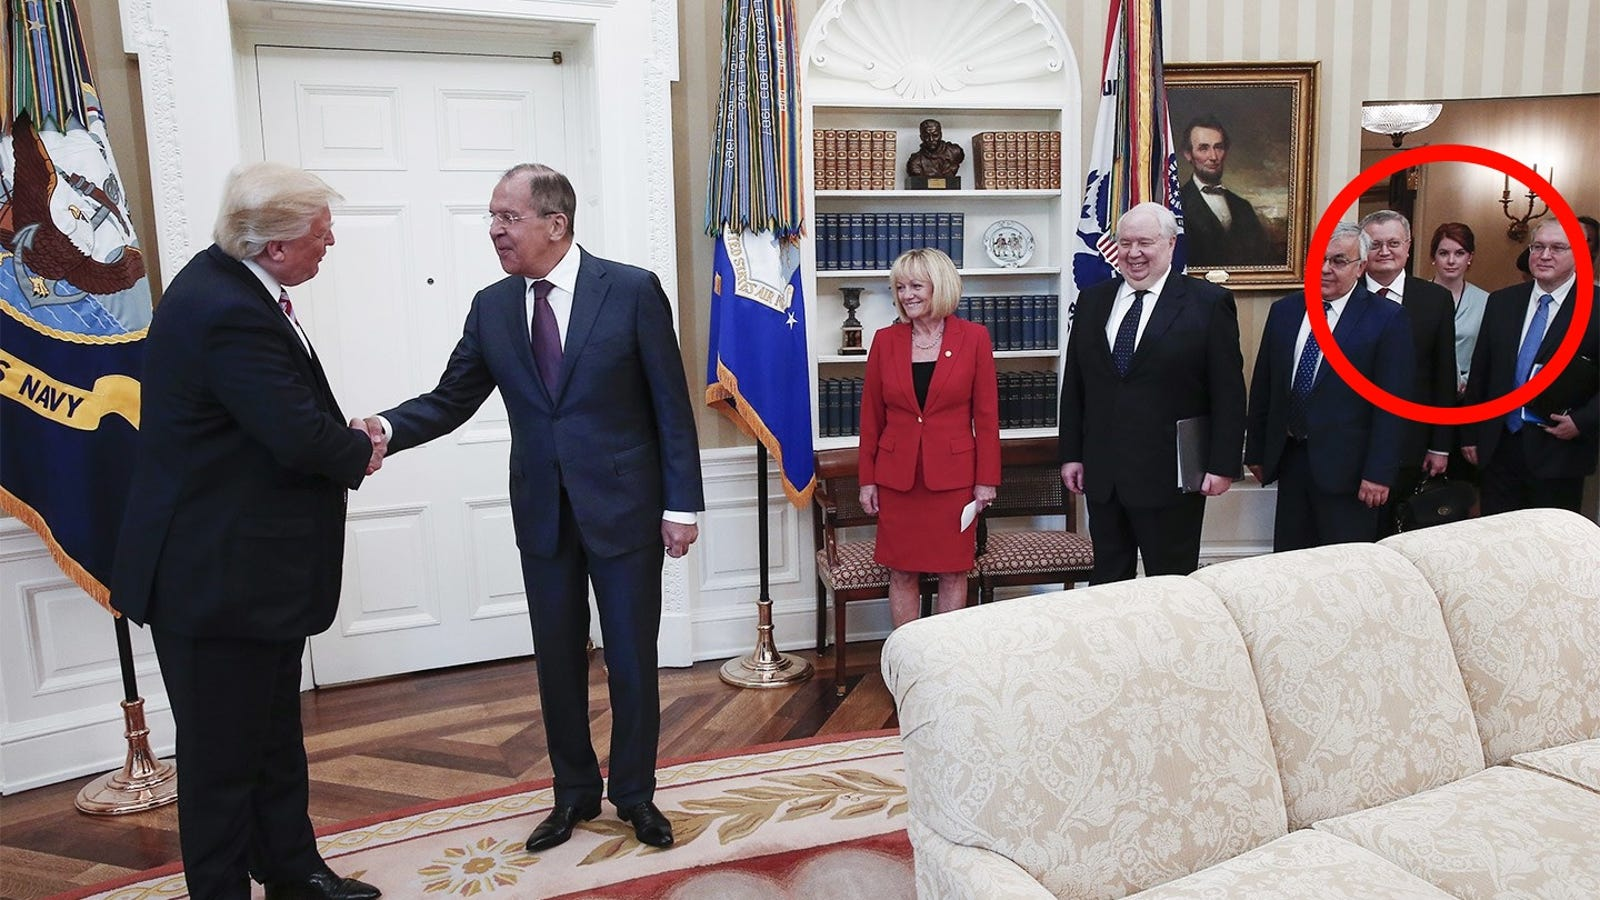 This Viral Photo Doesn't Show Maria Butina in an Oval Office Meeting With Trump